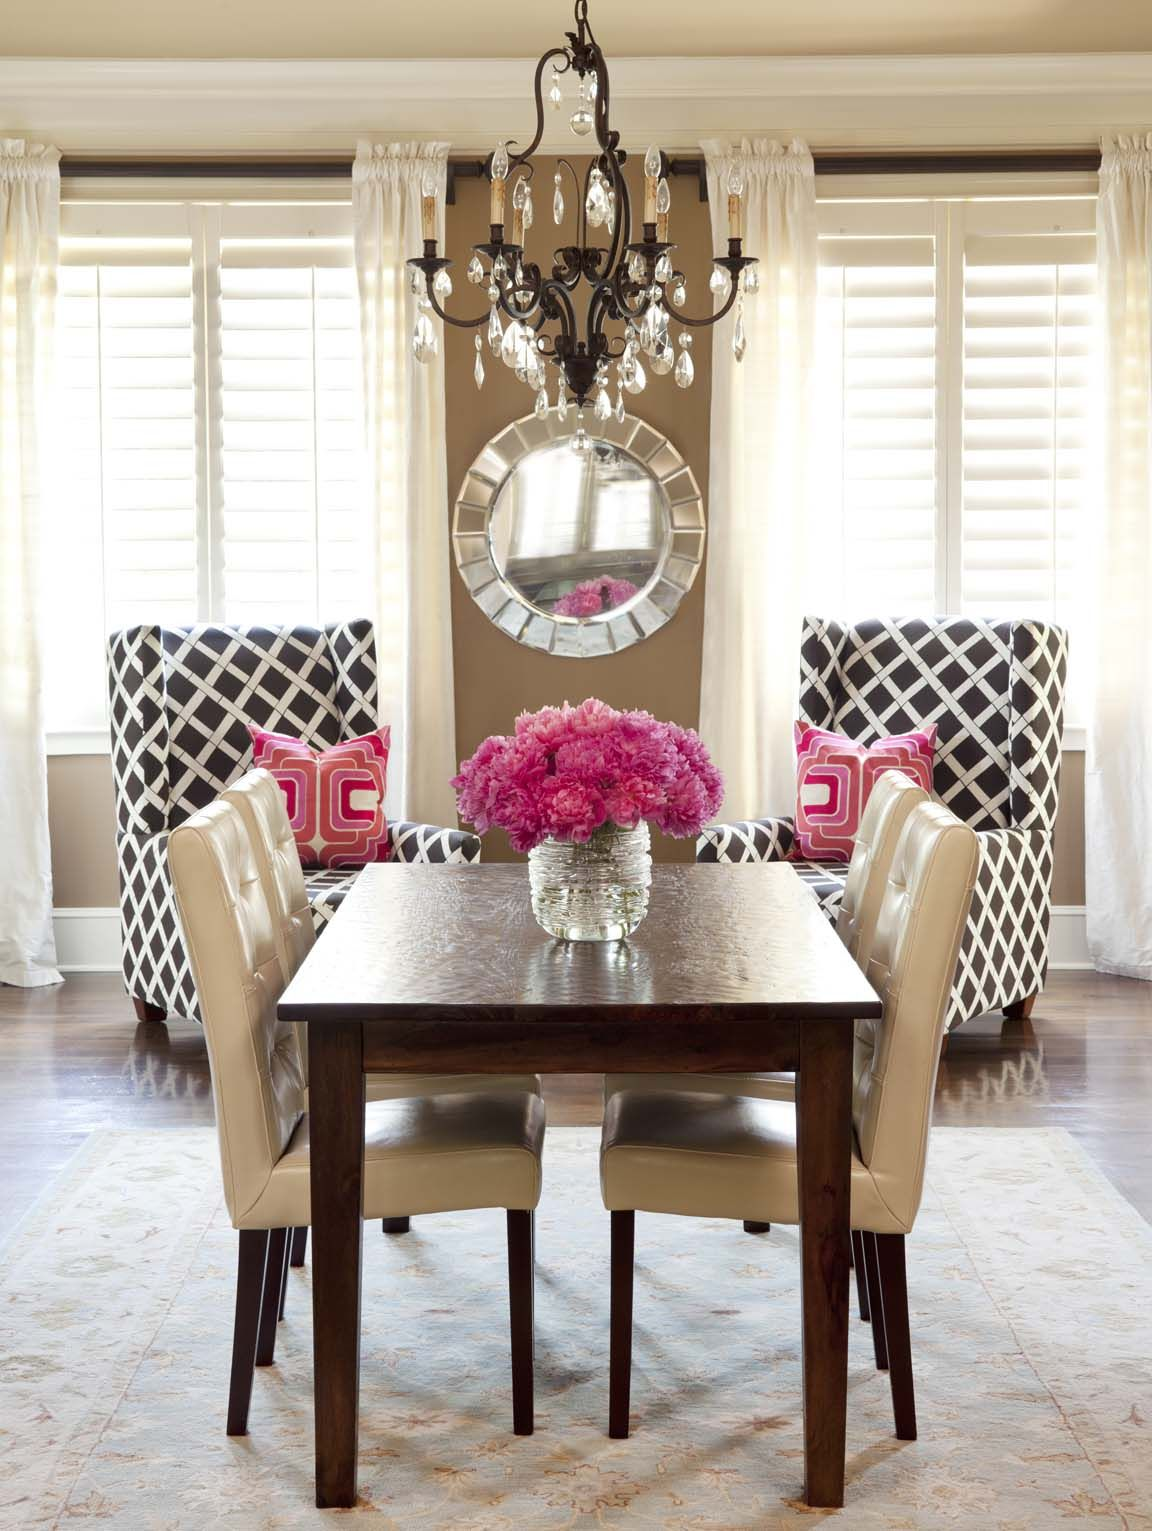 Dining Room With Sitting Area Ideas Part - 18: Fab Inspiration For The New Apartment!!! Dining Room Chic